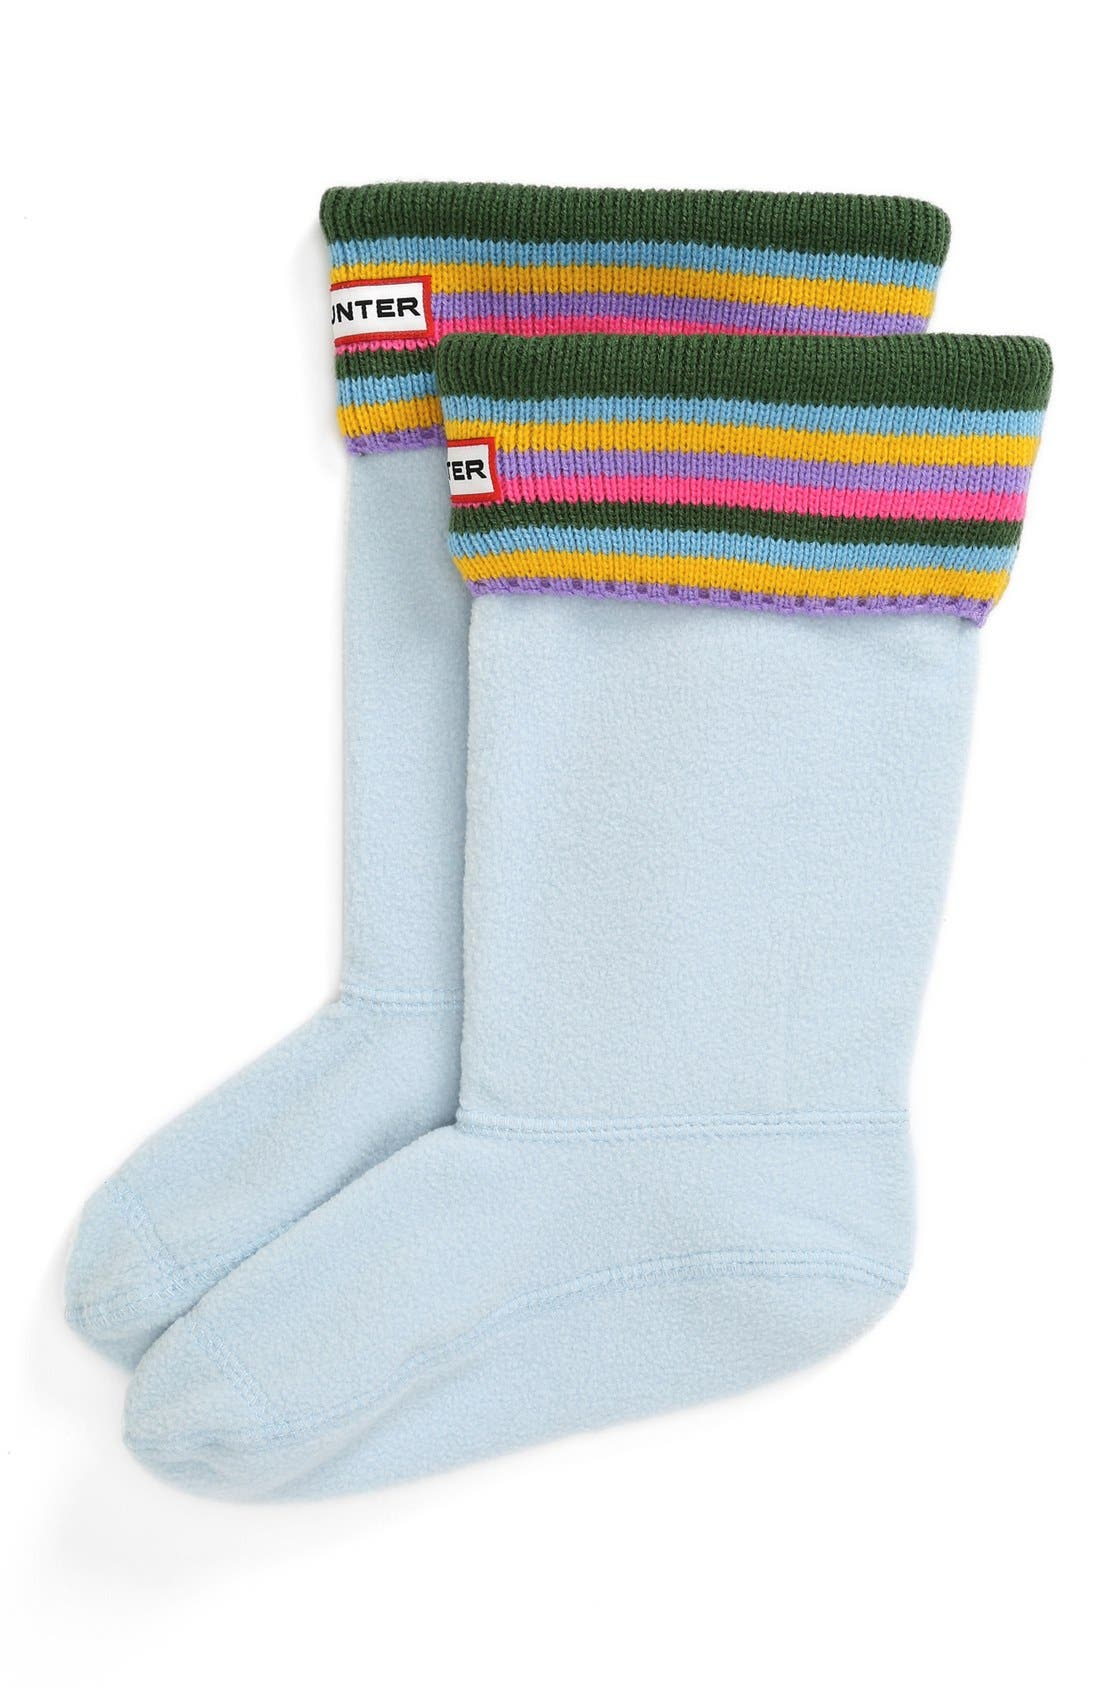 Alternate Image 1 Selected - Hunter Patterned Cuff Welly Socks (Toddler, Little Kid & Big Kid)